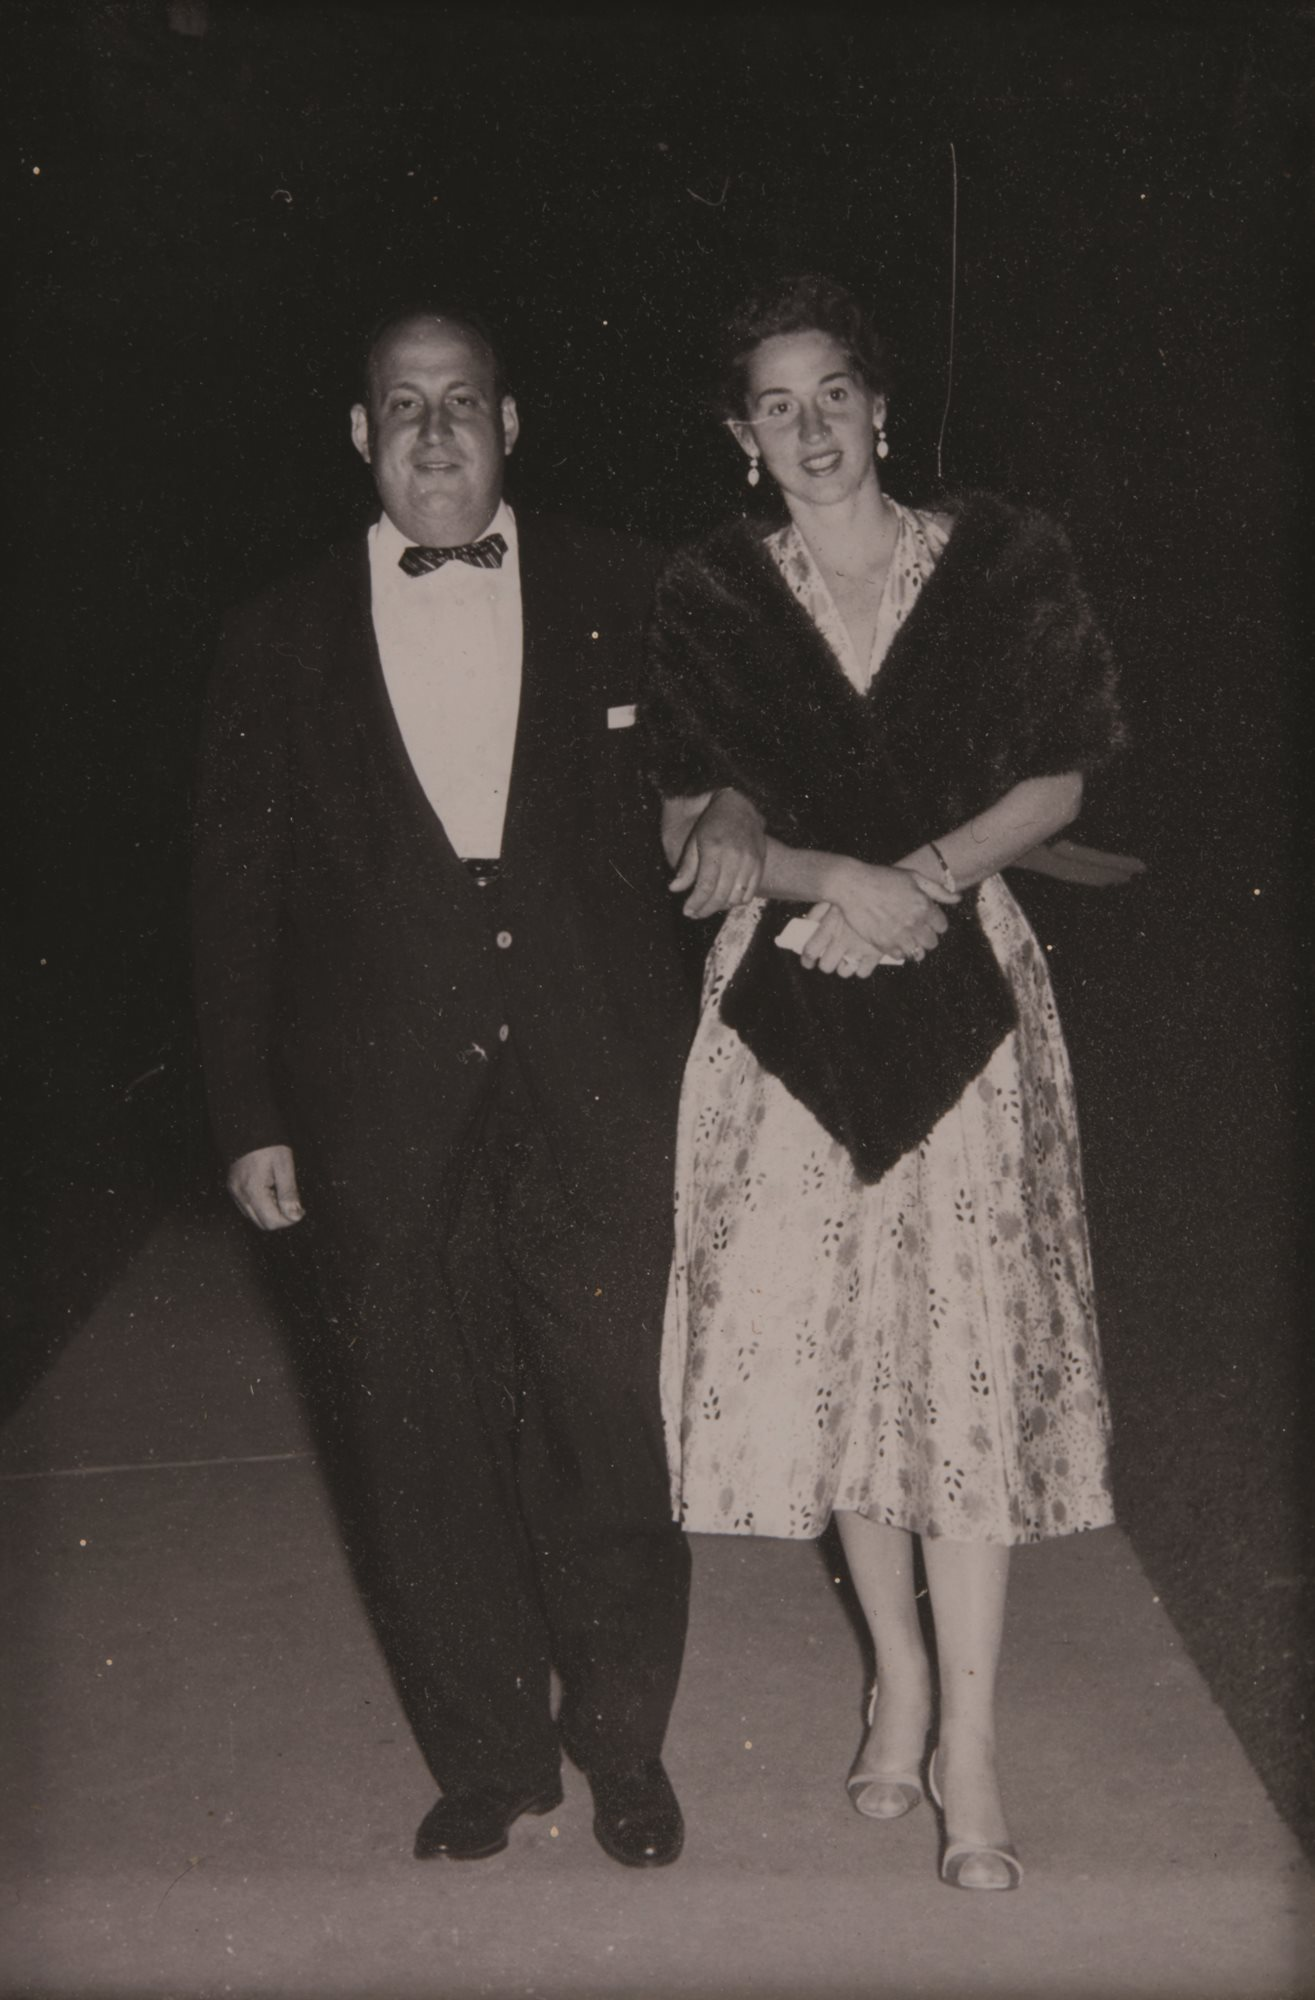 Dr. Henry & Mrs. Fannie Levine; images courtesy of the Levine Family.